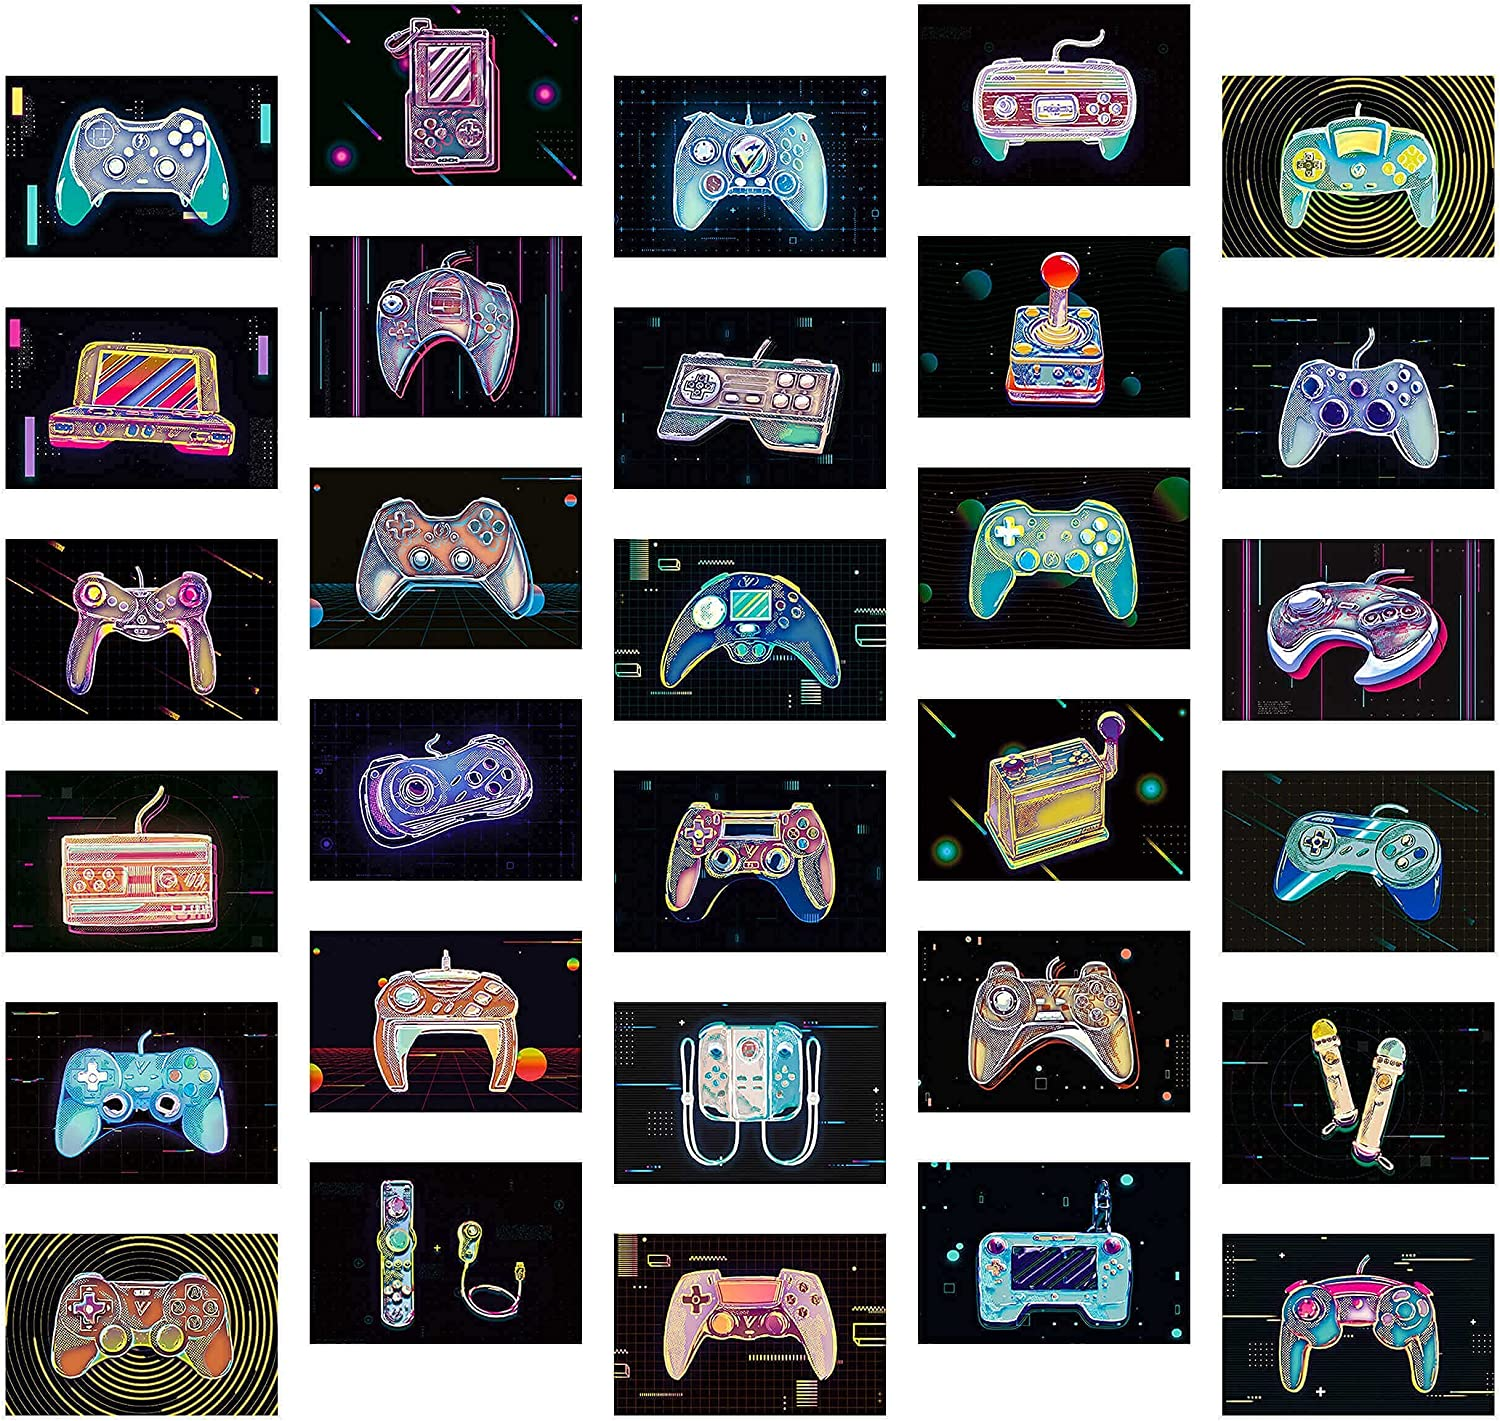 30PCS Retro Video Game Art Prints (6x4)   Mini Gamer Posters for Boys Room and Man Cave Decor   Game Room Decor by Vibes and Vistas